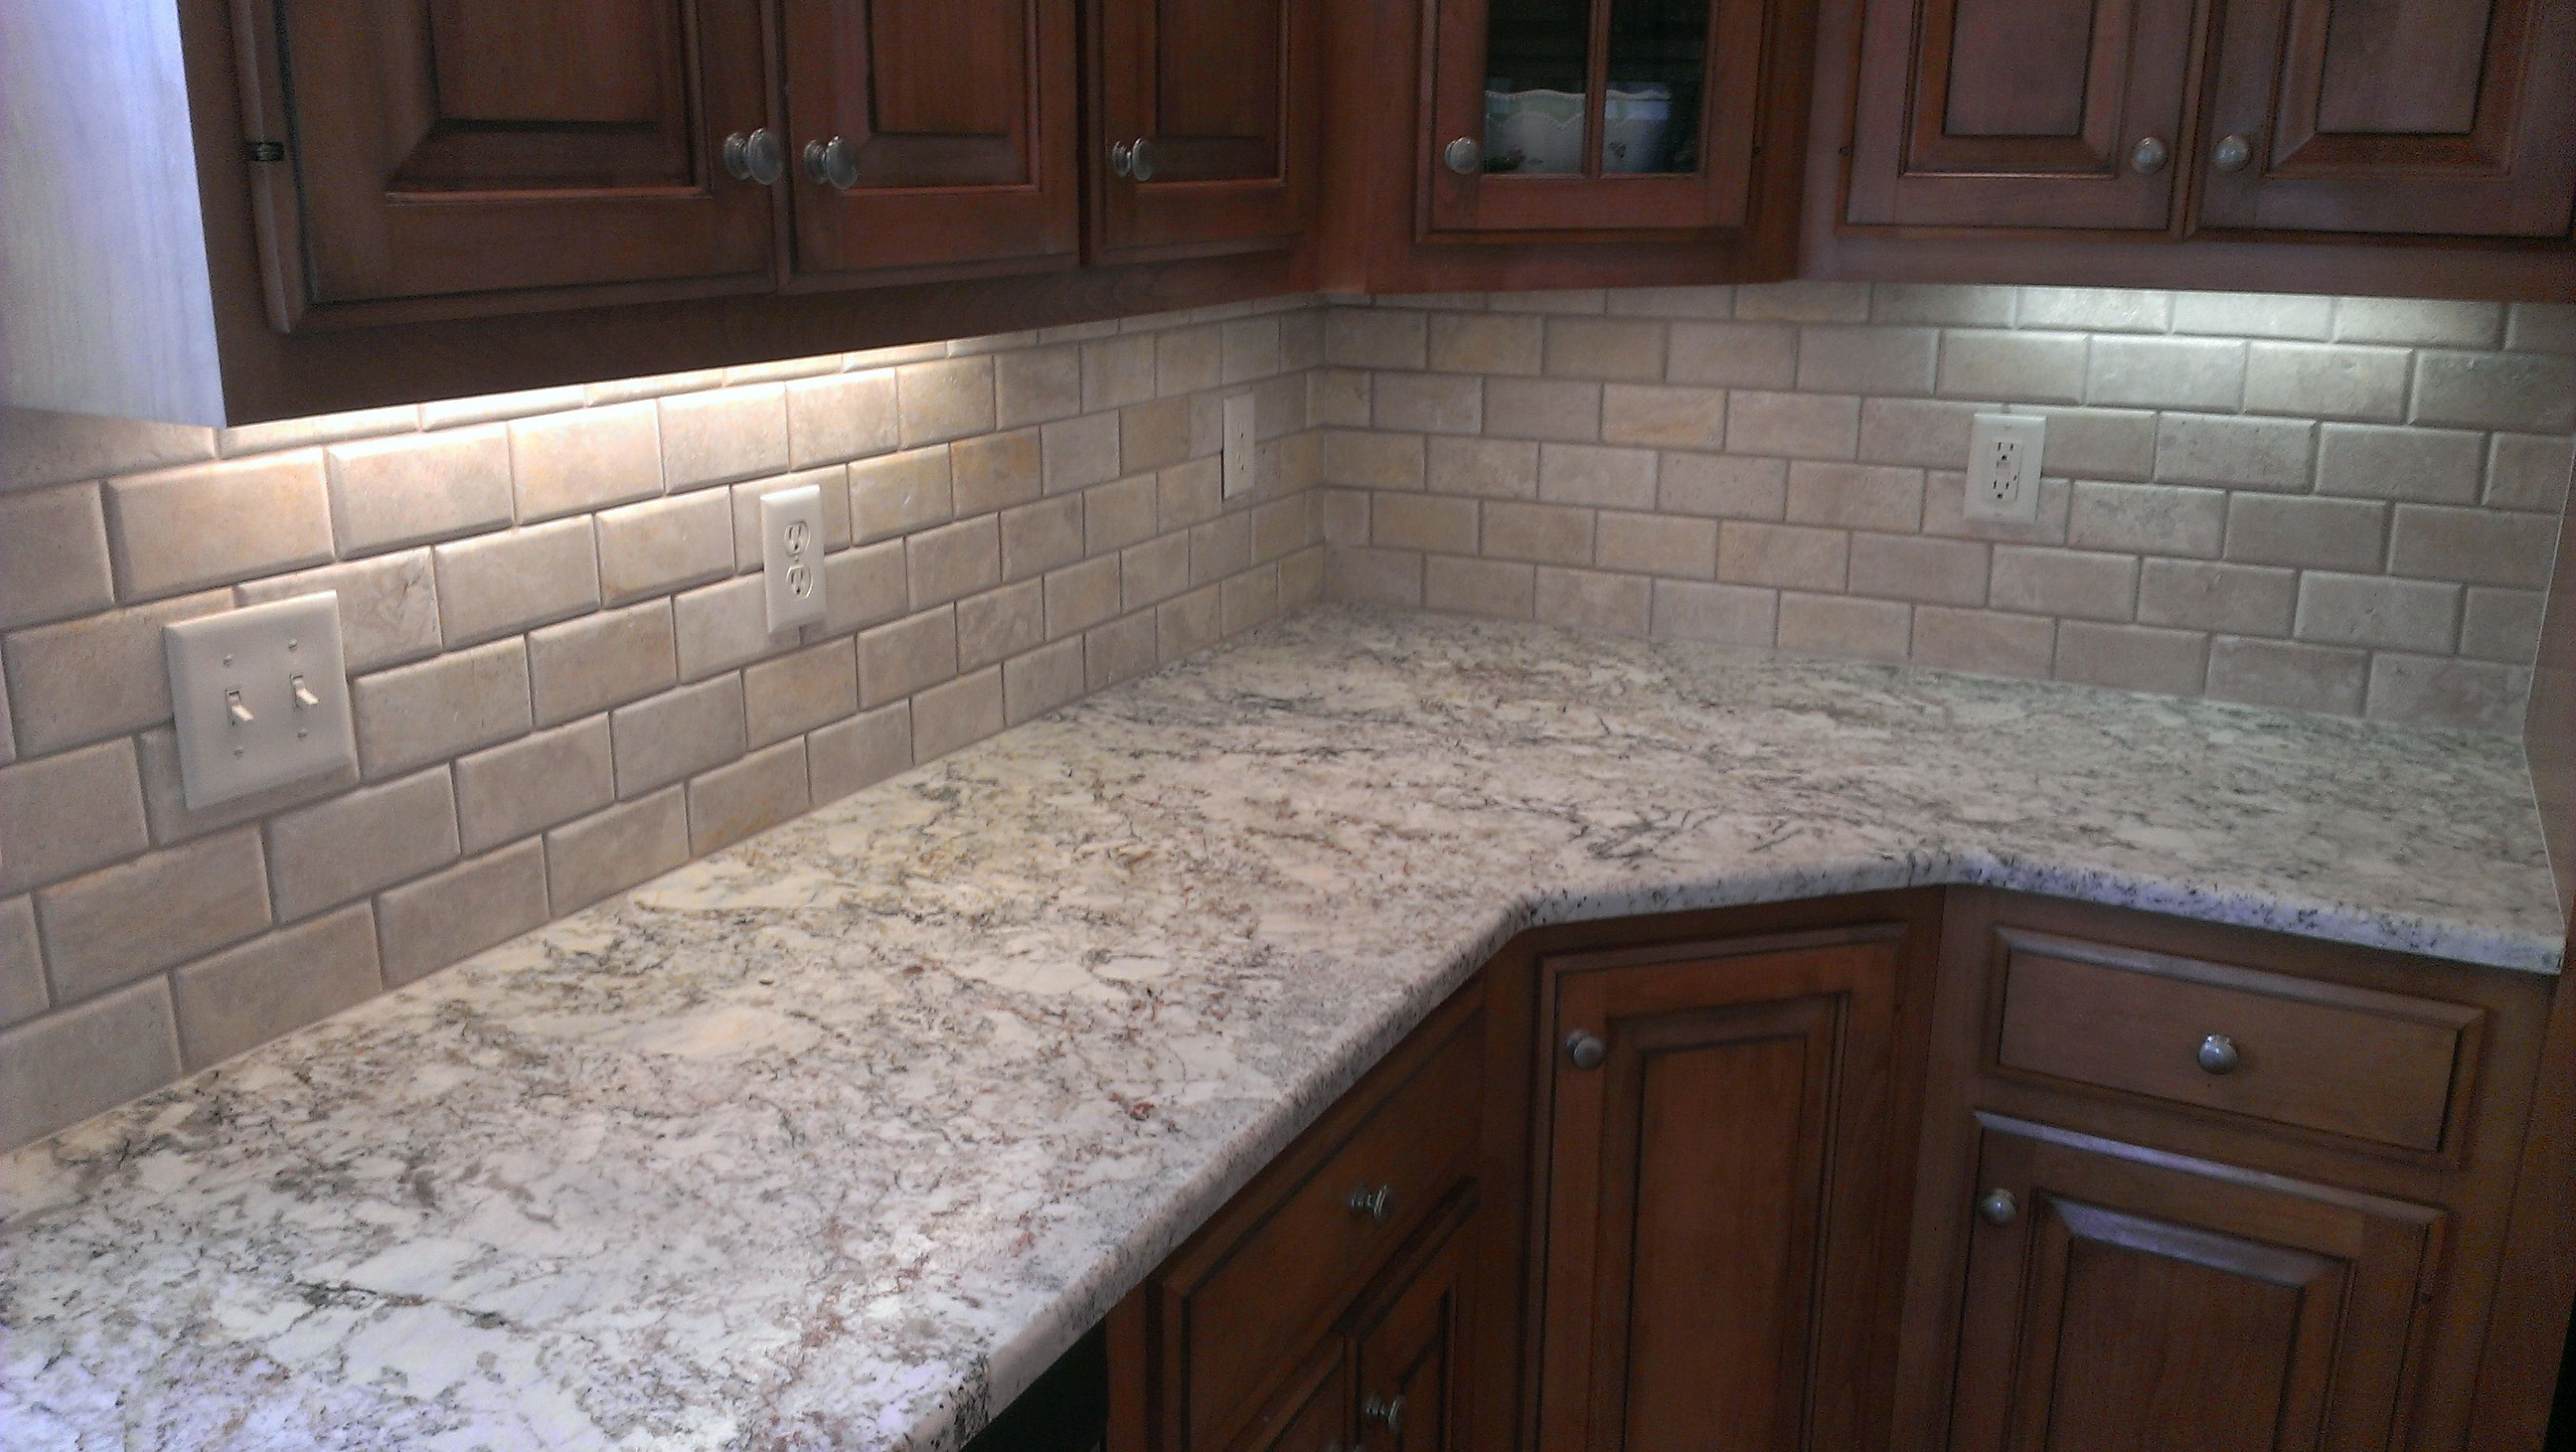 3 Quot X 6 Quot Beveled Edge Honed And Filled Travertine